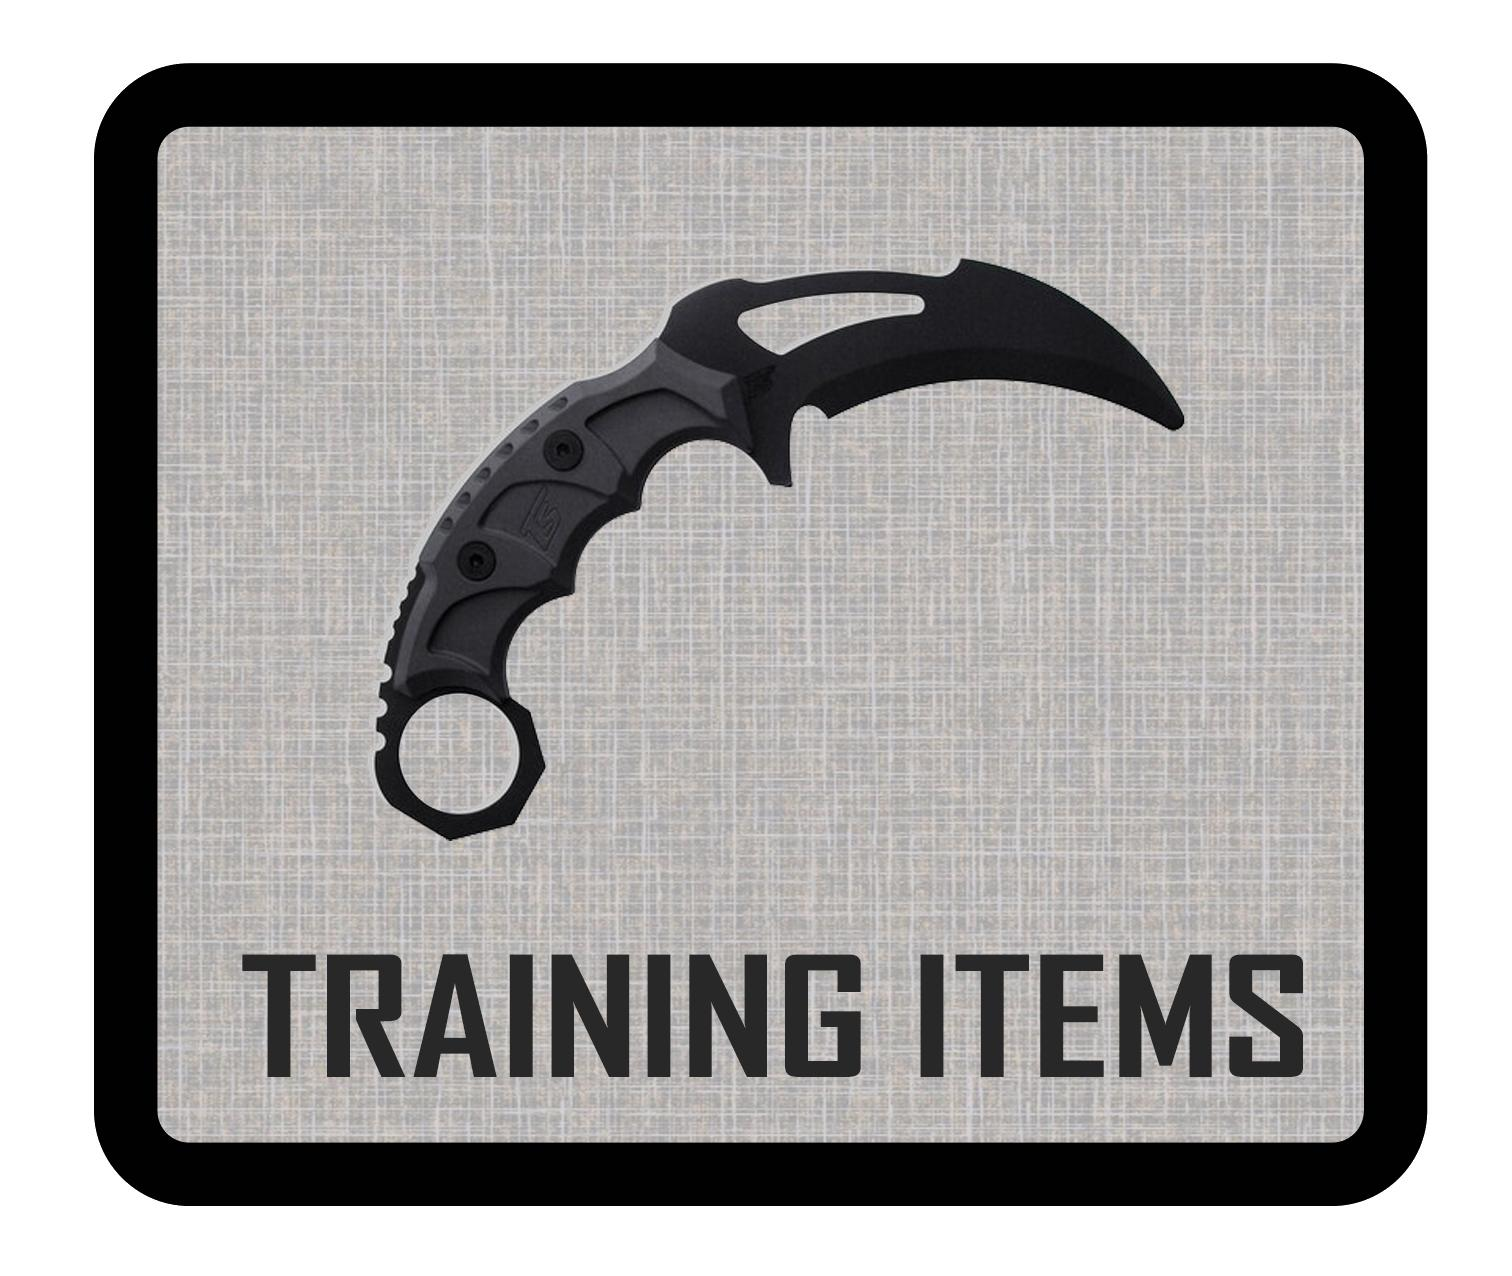 TRAINING ITEMS